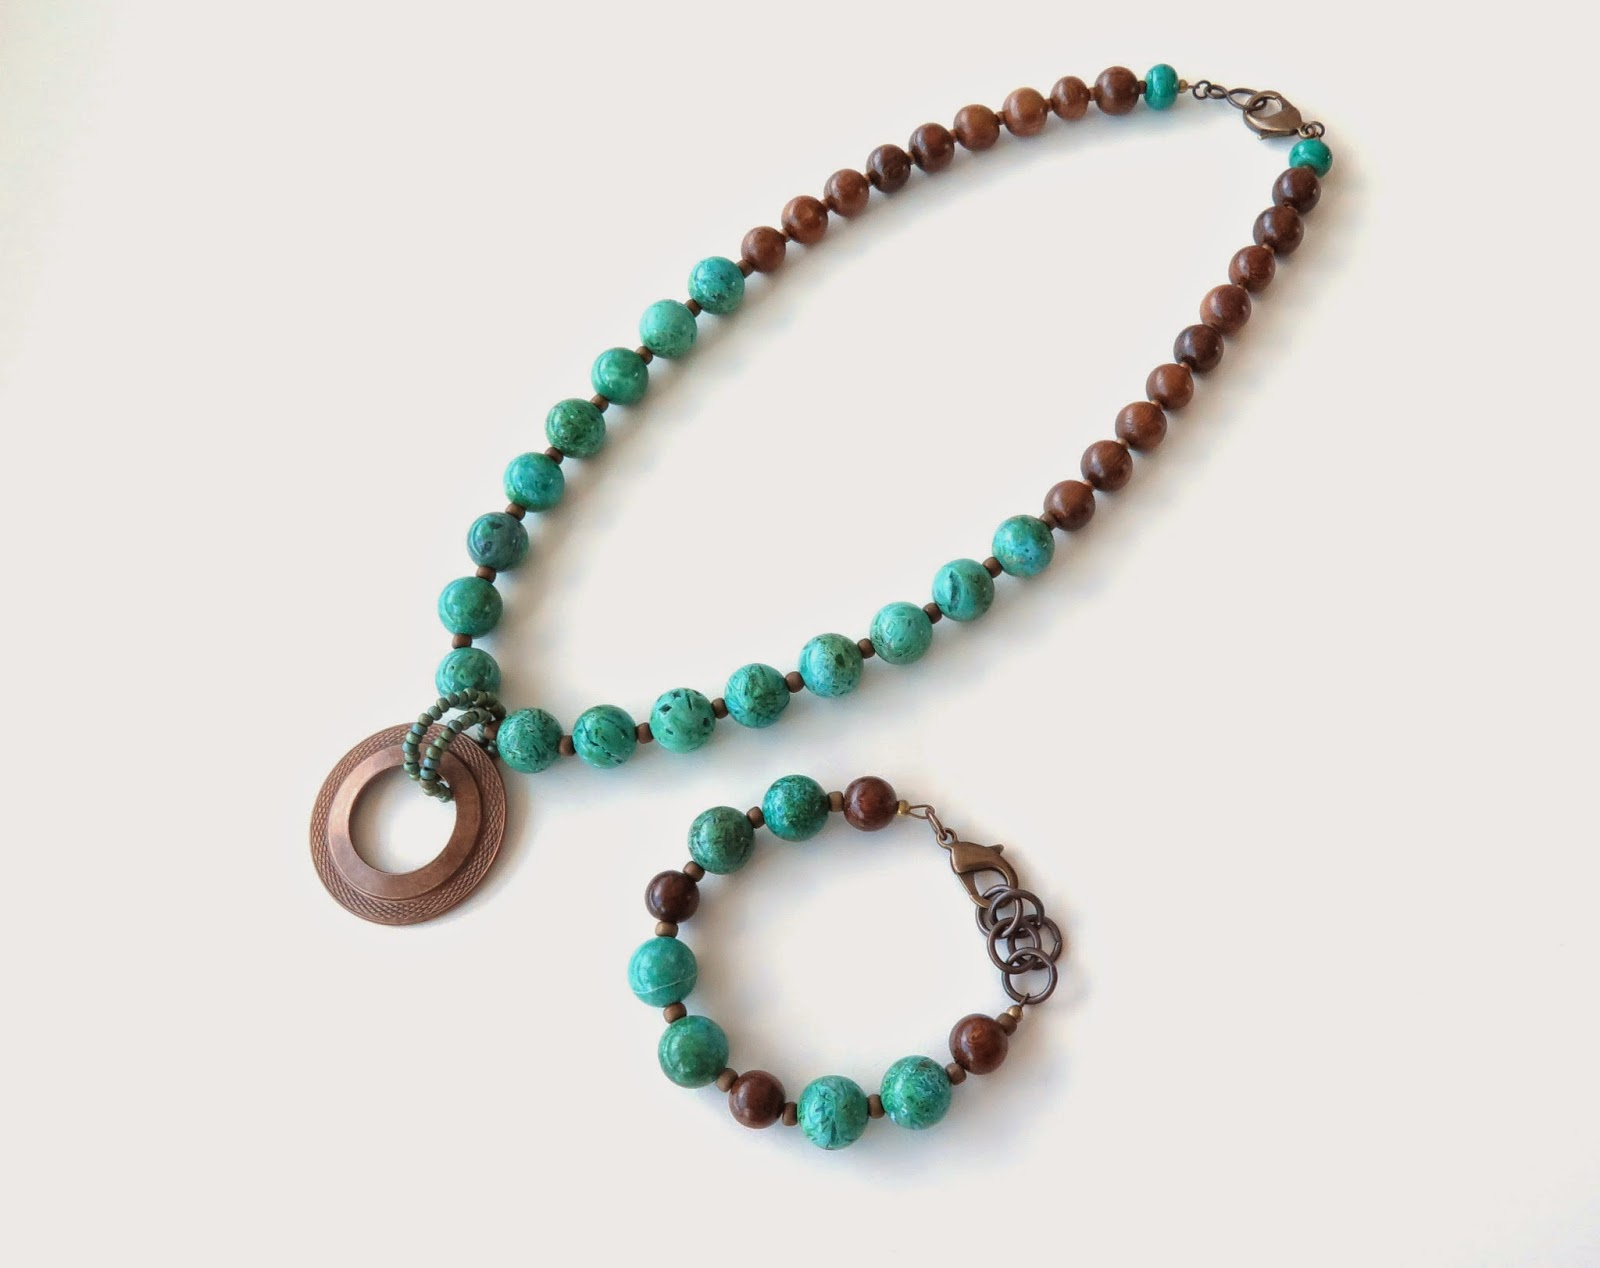 http://sashaandmax.bigcartel.com/product/alia-green-agate-and-wood-necklace